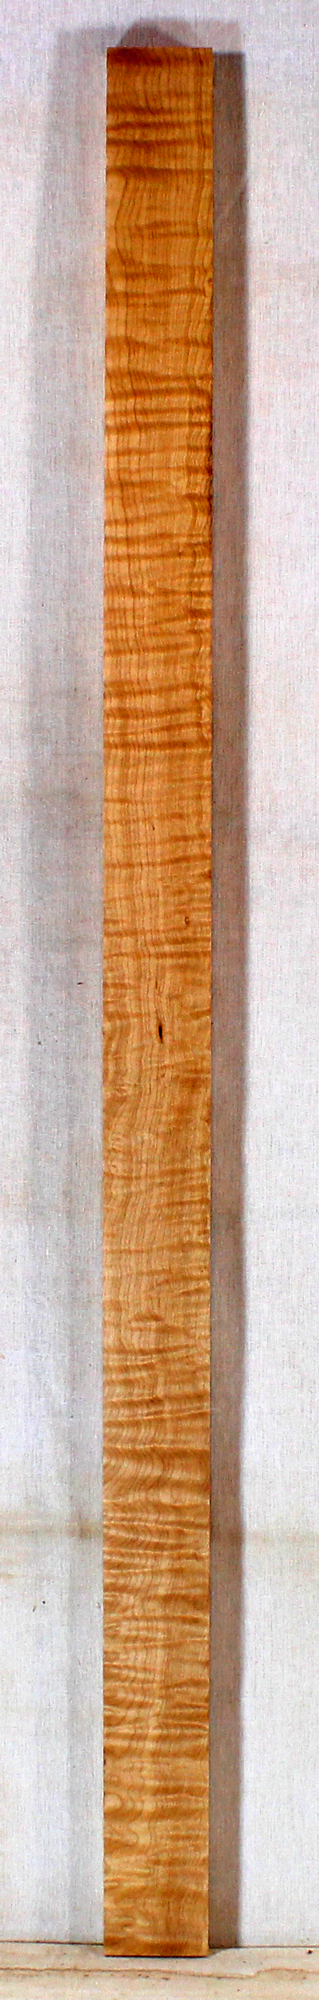 Maple Dulcimer Finger Board (BK96)